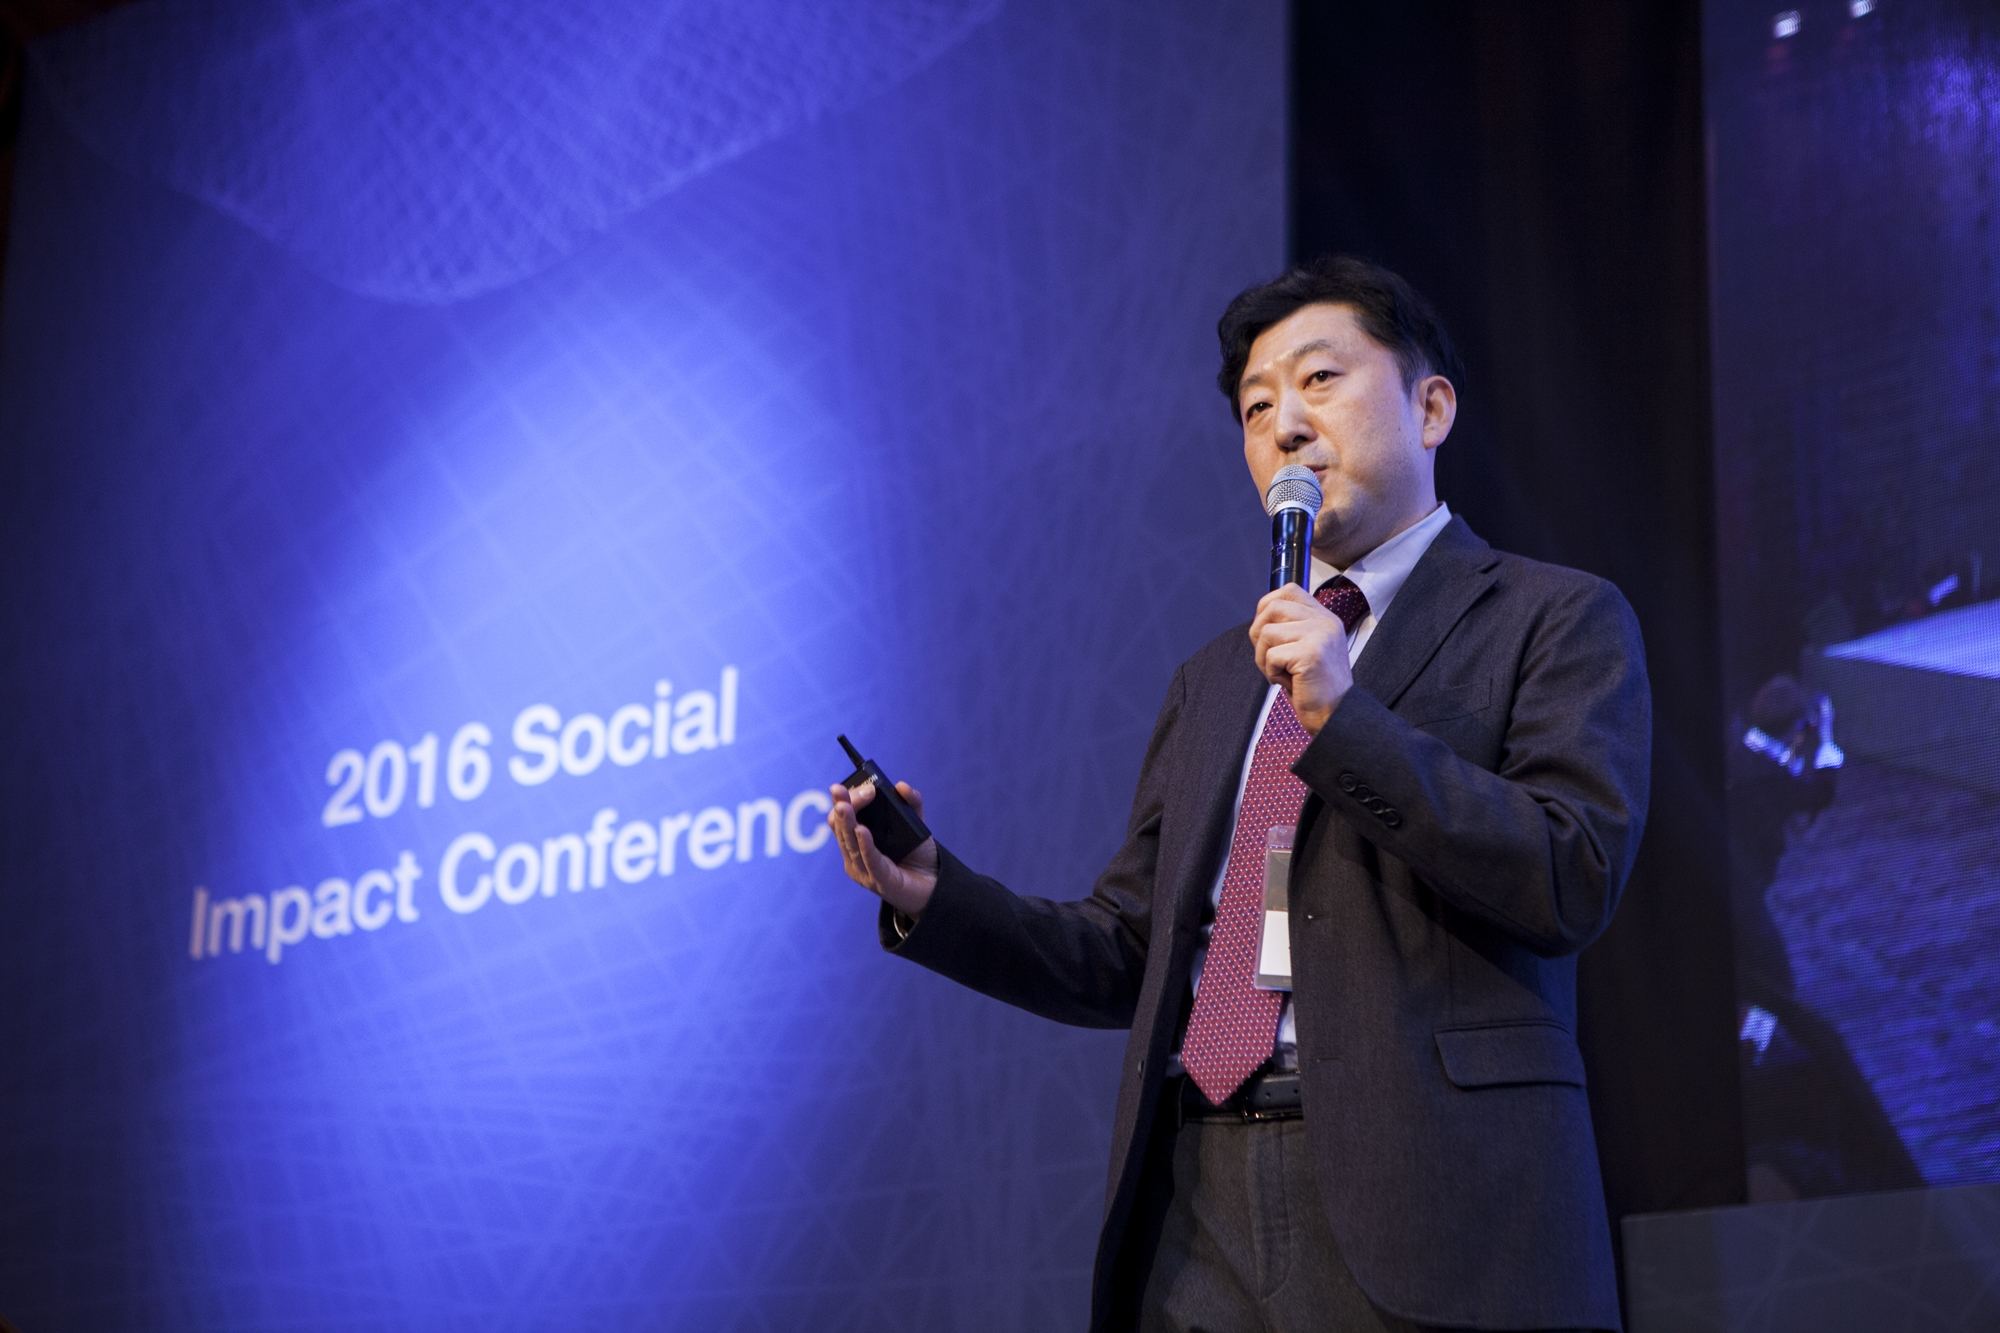 2016 Social Impact Conference